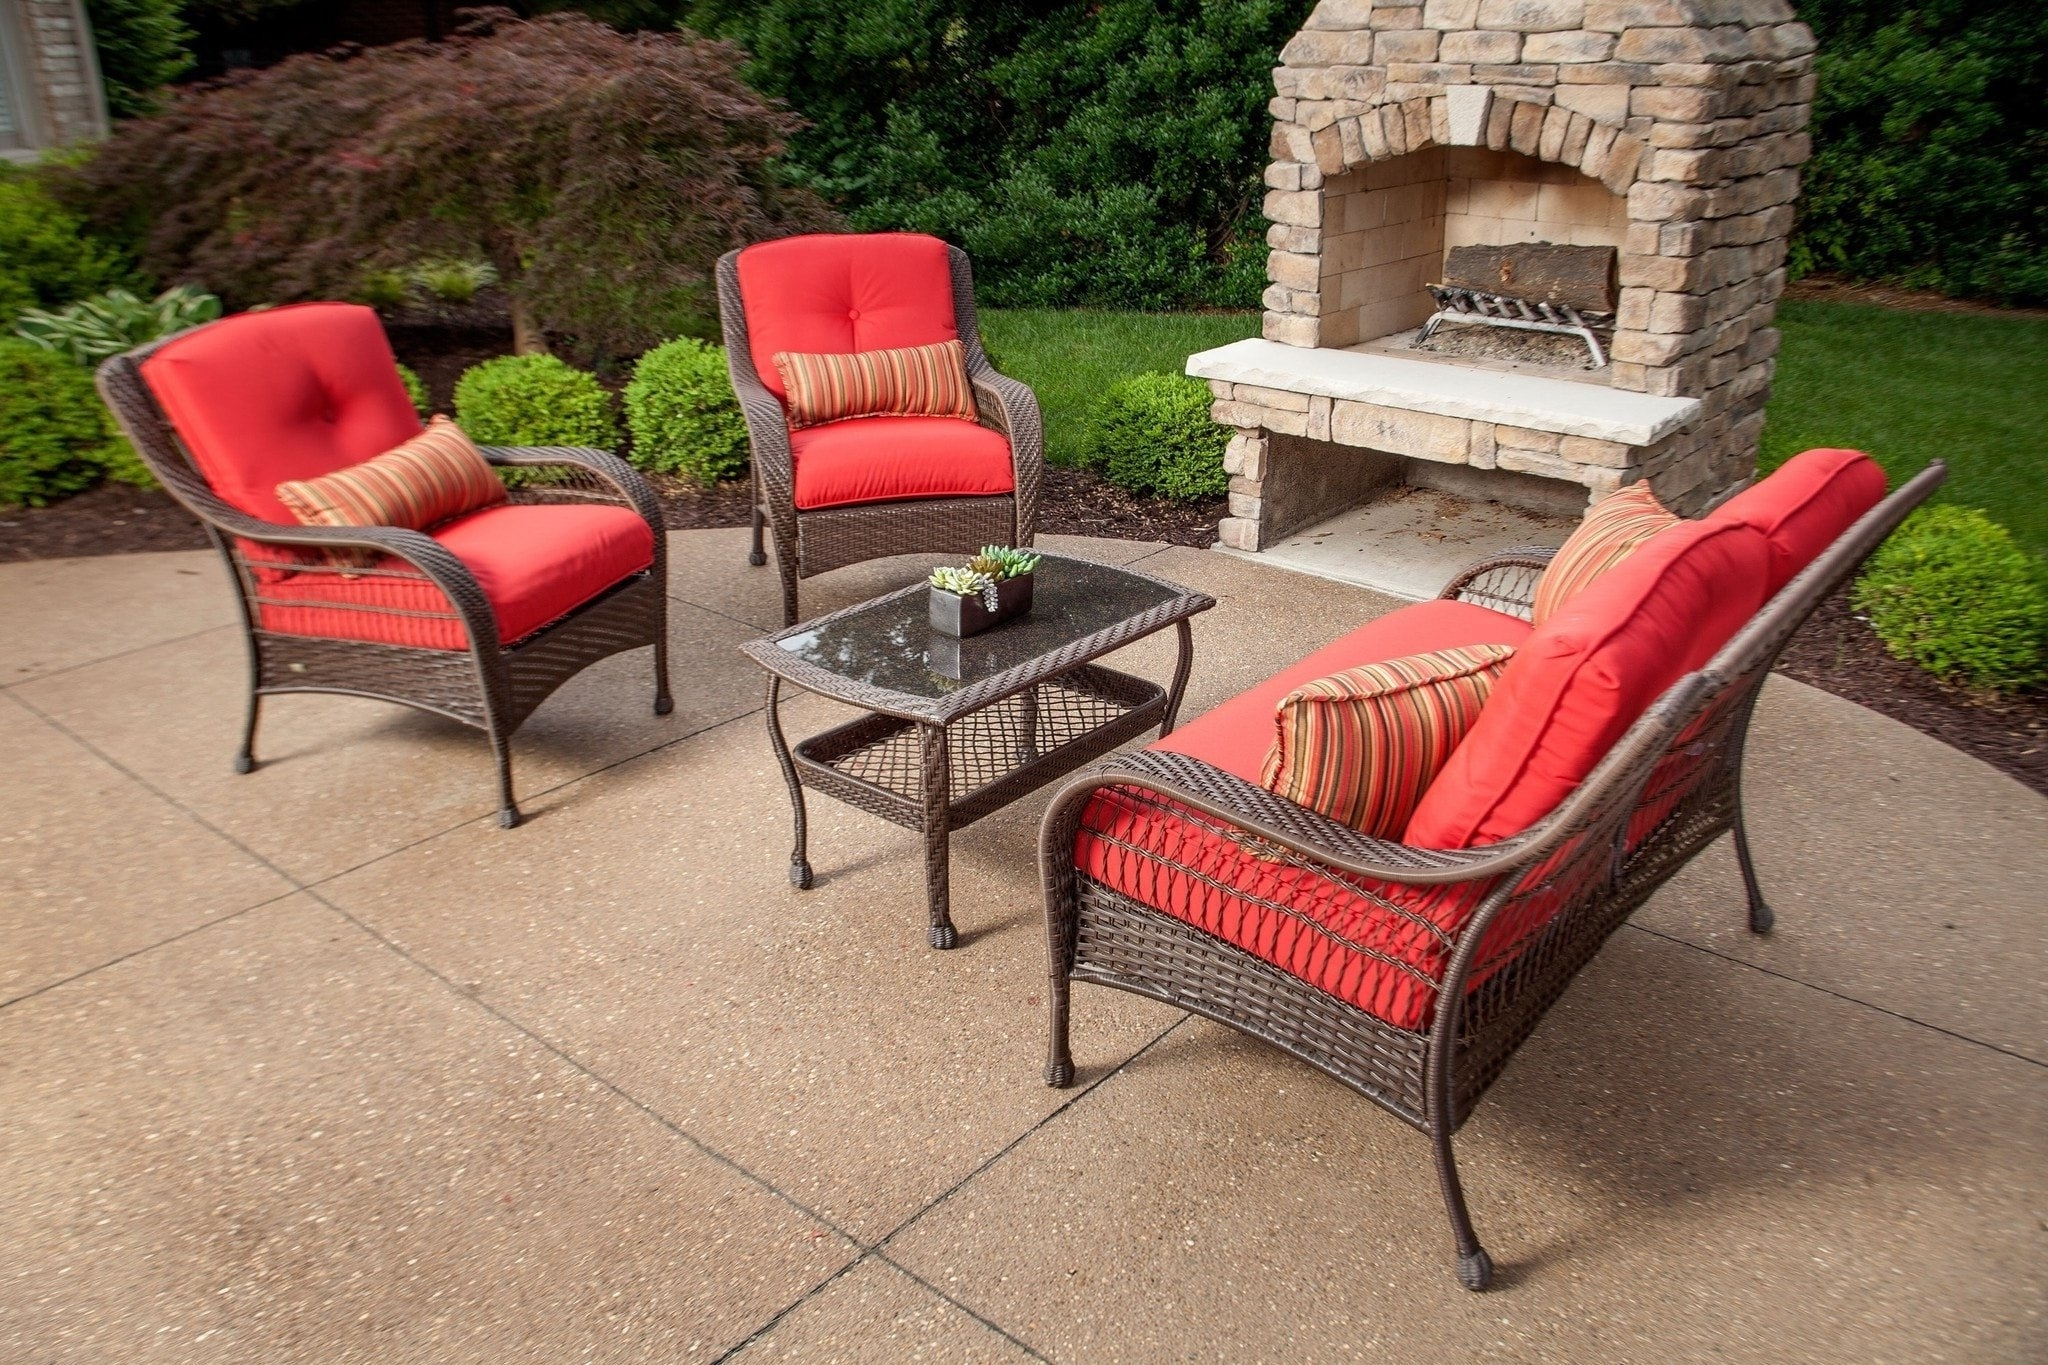 Widely Used Red Patio Conversation Sets Intended For Patio Table: Patio Furniture Set Americas Backyards Outdoor Living (View 20 of 20)